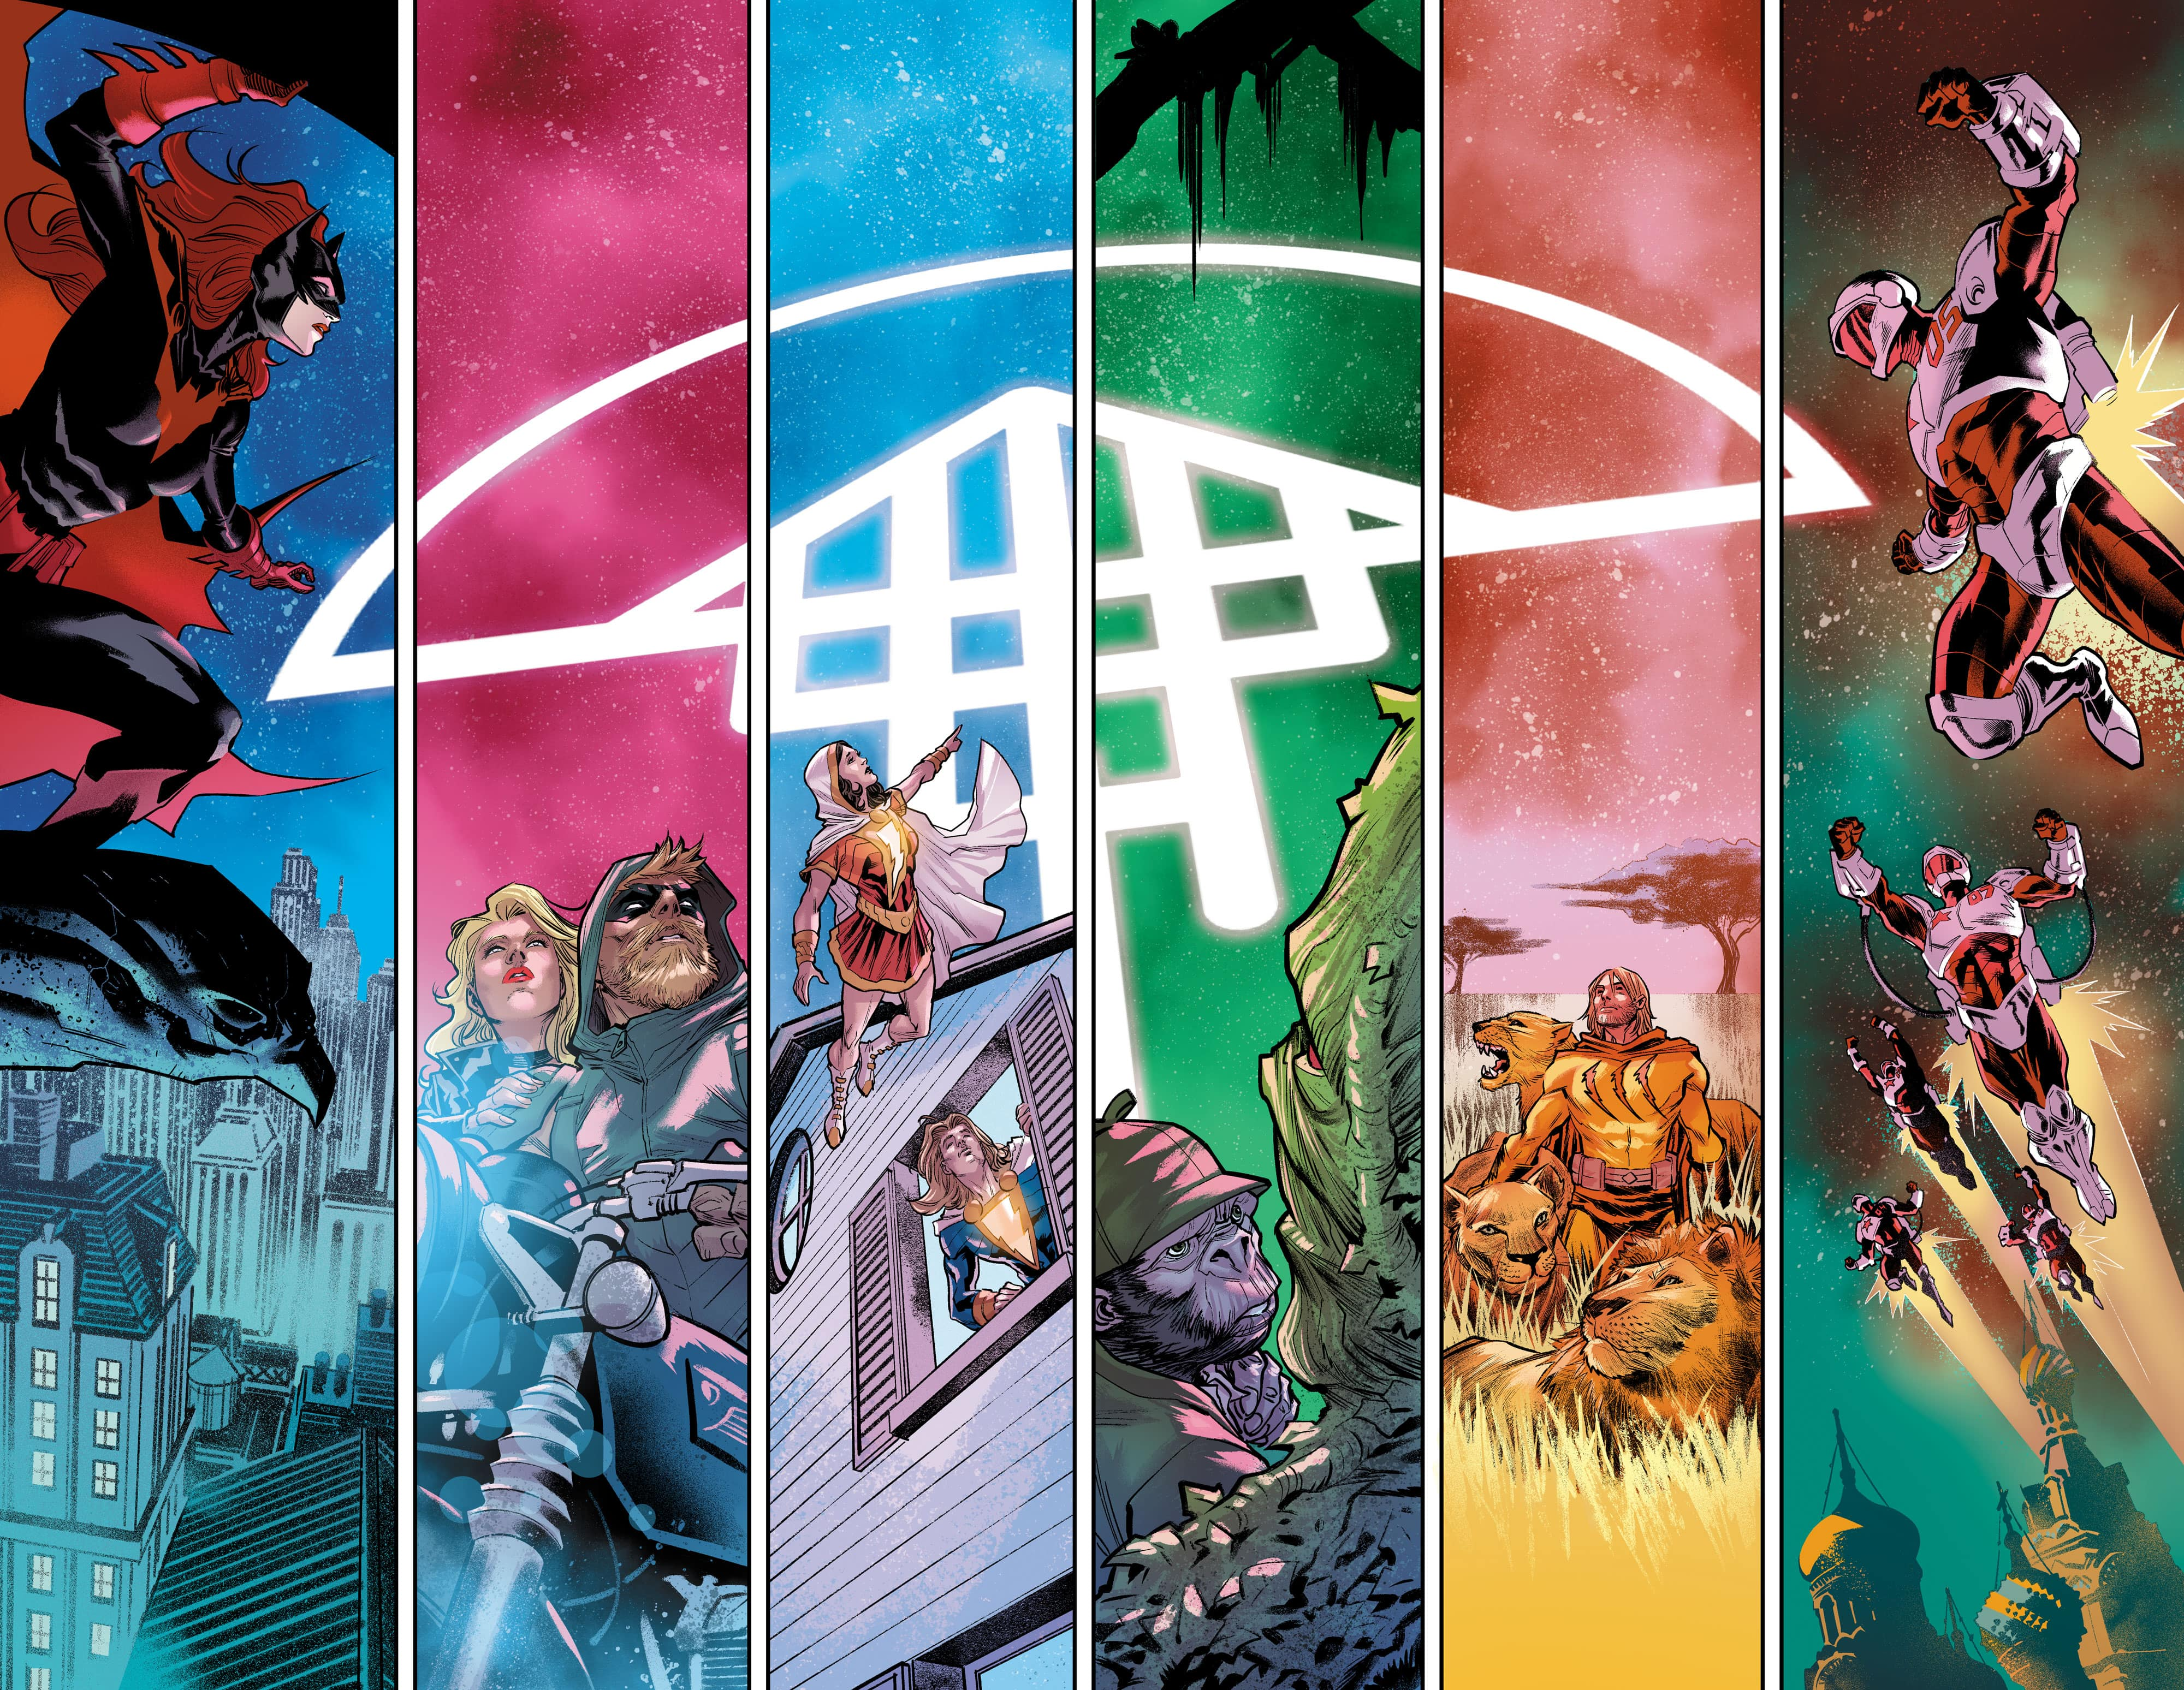 First look at Francis Manapul's art in Justice League #35